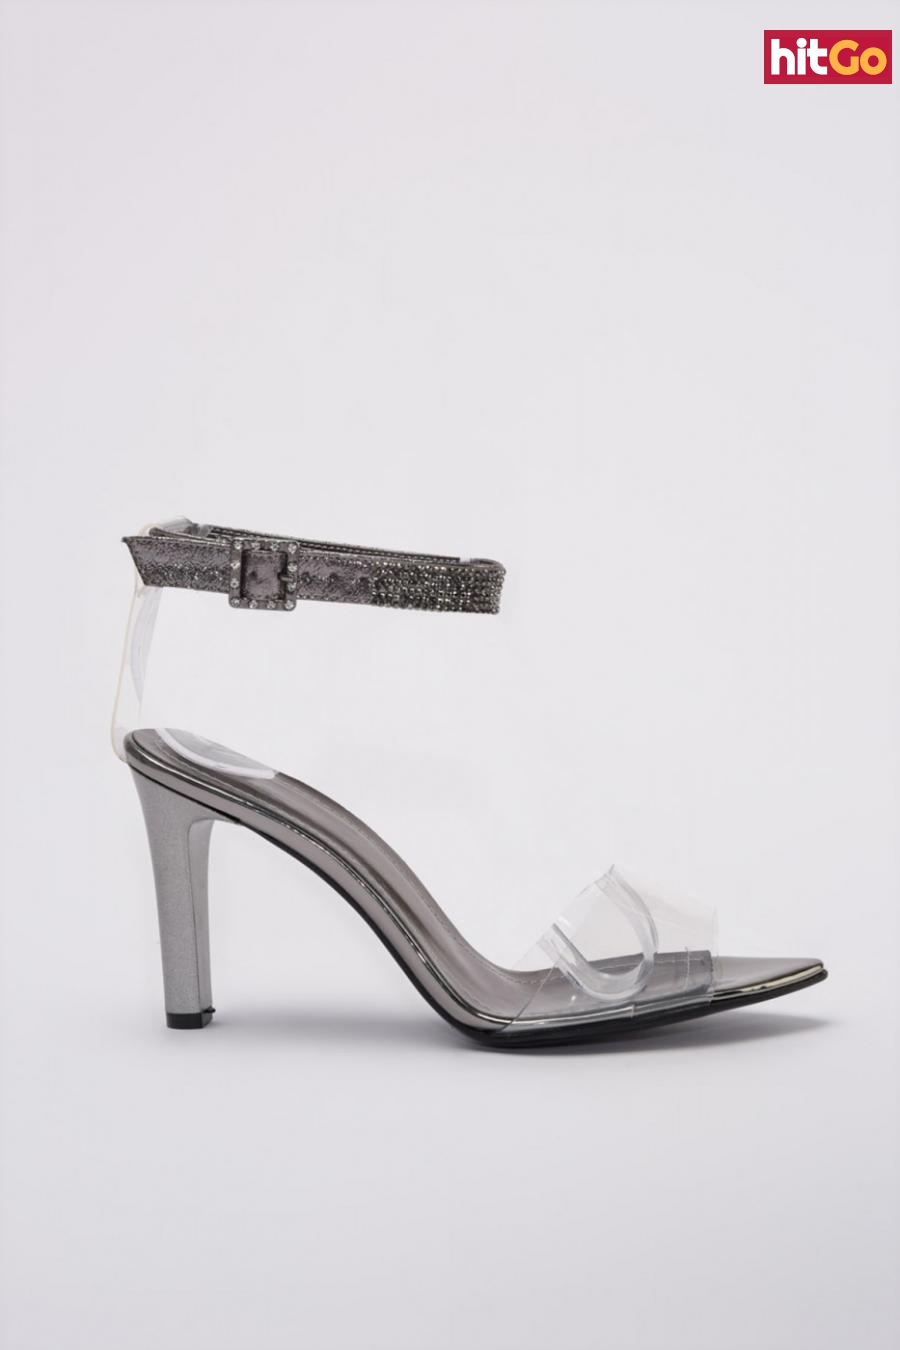 Trendyol Anthracite Stone Detailed Transparent Womens Classic Heels dámské 38